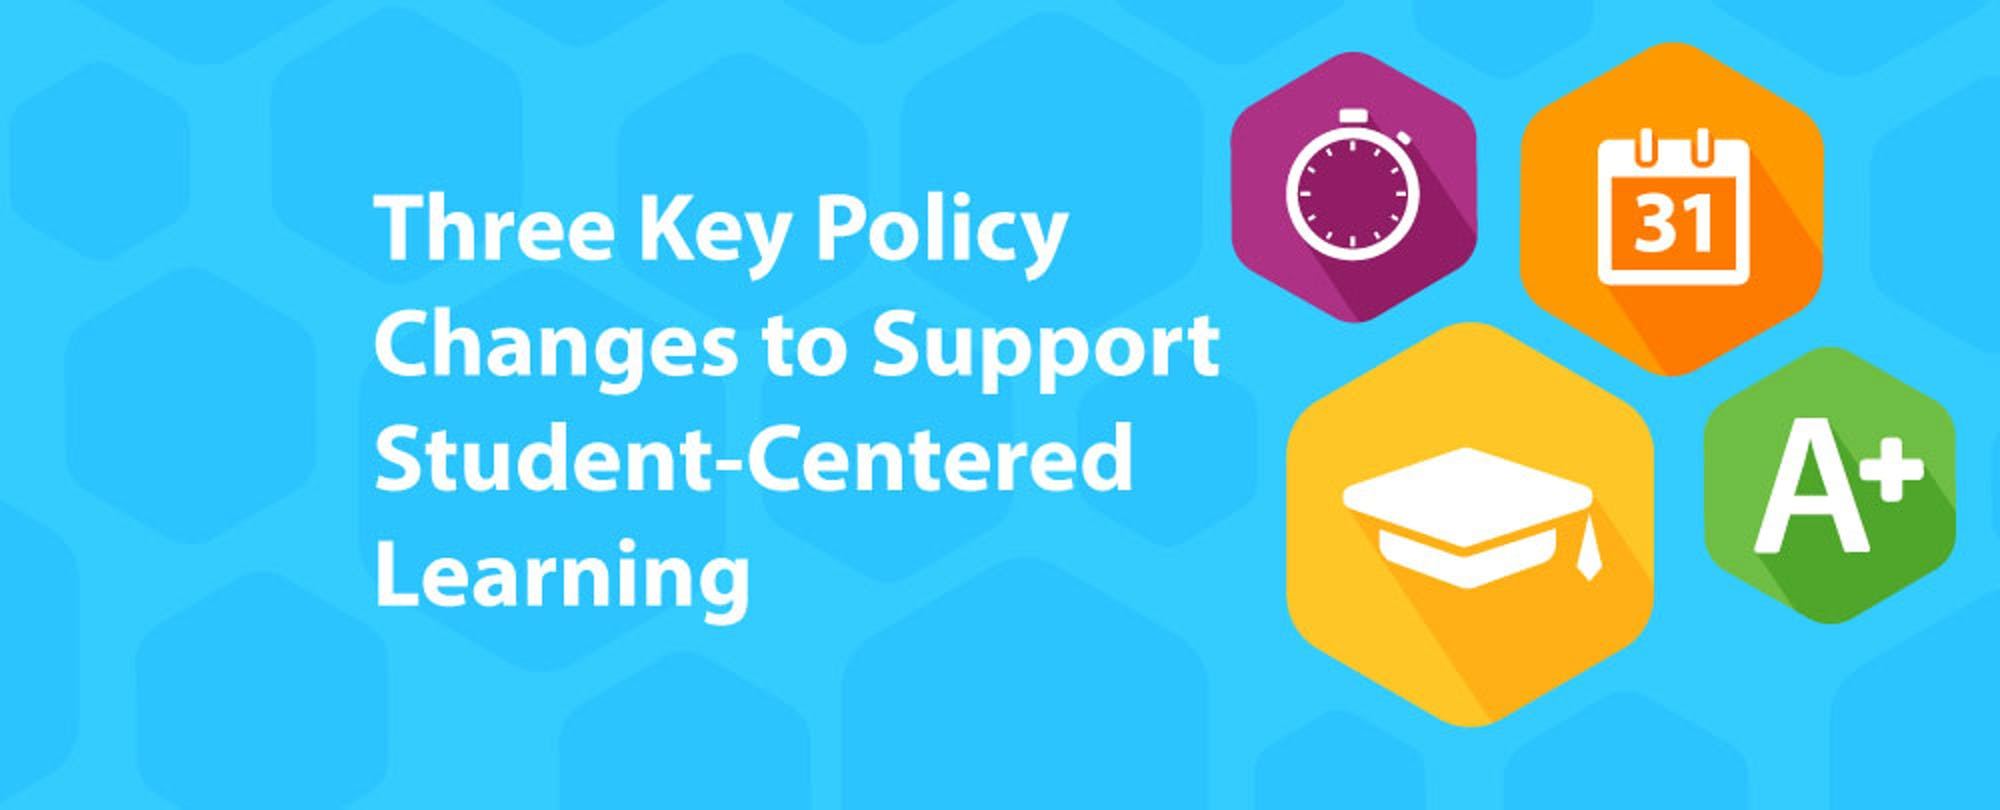 Three Key Policy Changes to Support Student-Centered Learning